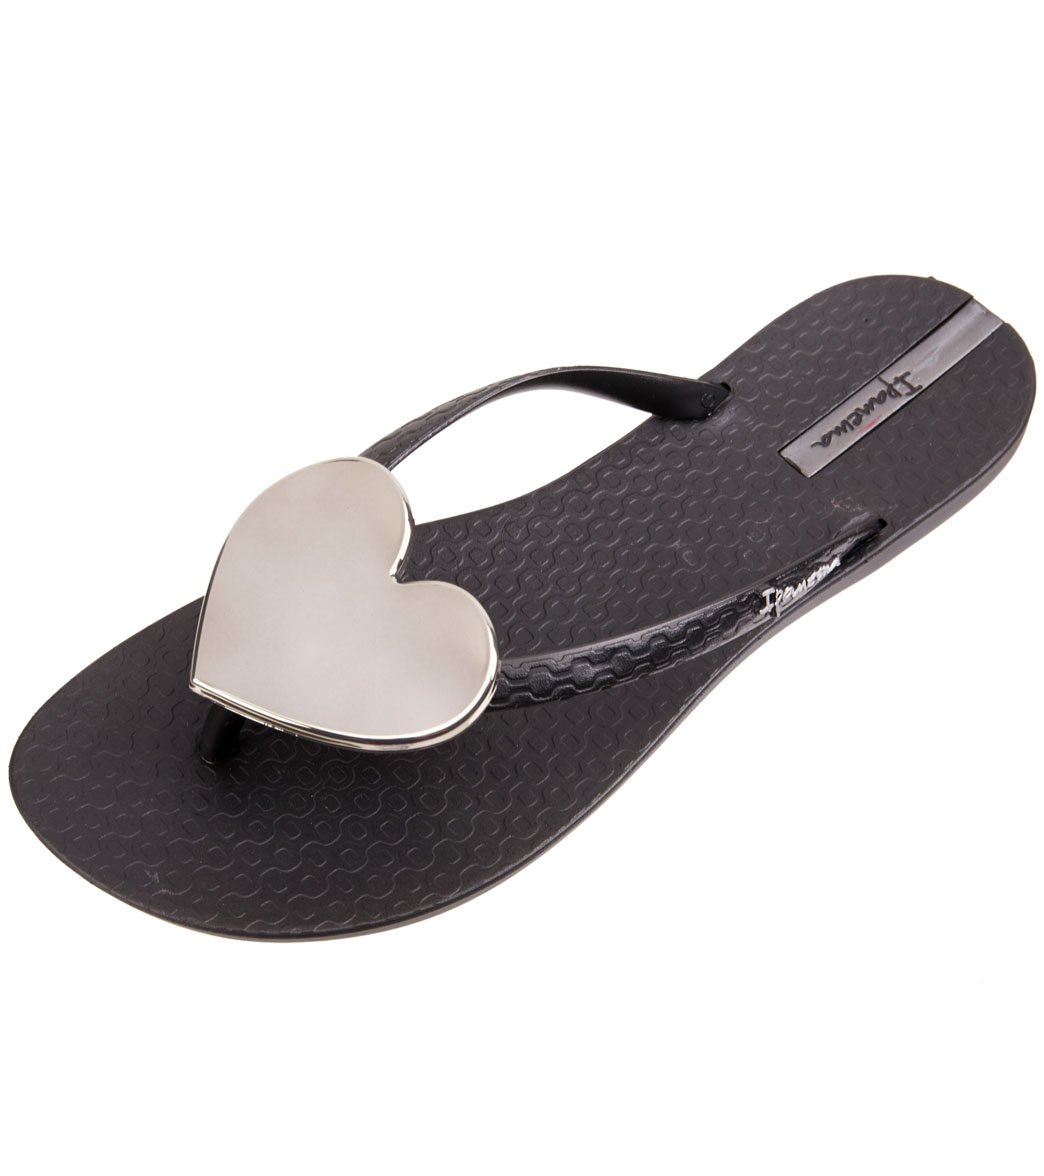 91a2270f6e45 Ipanema Women s Wave Heart Flip Flop at SwimOutlet.com